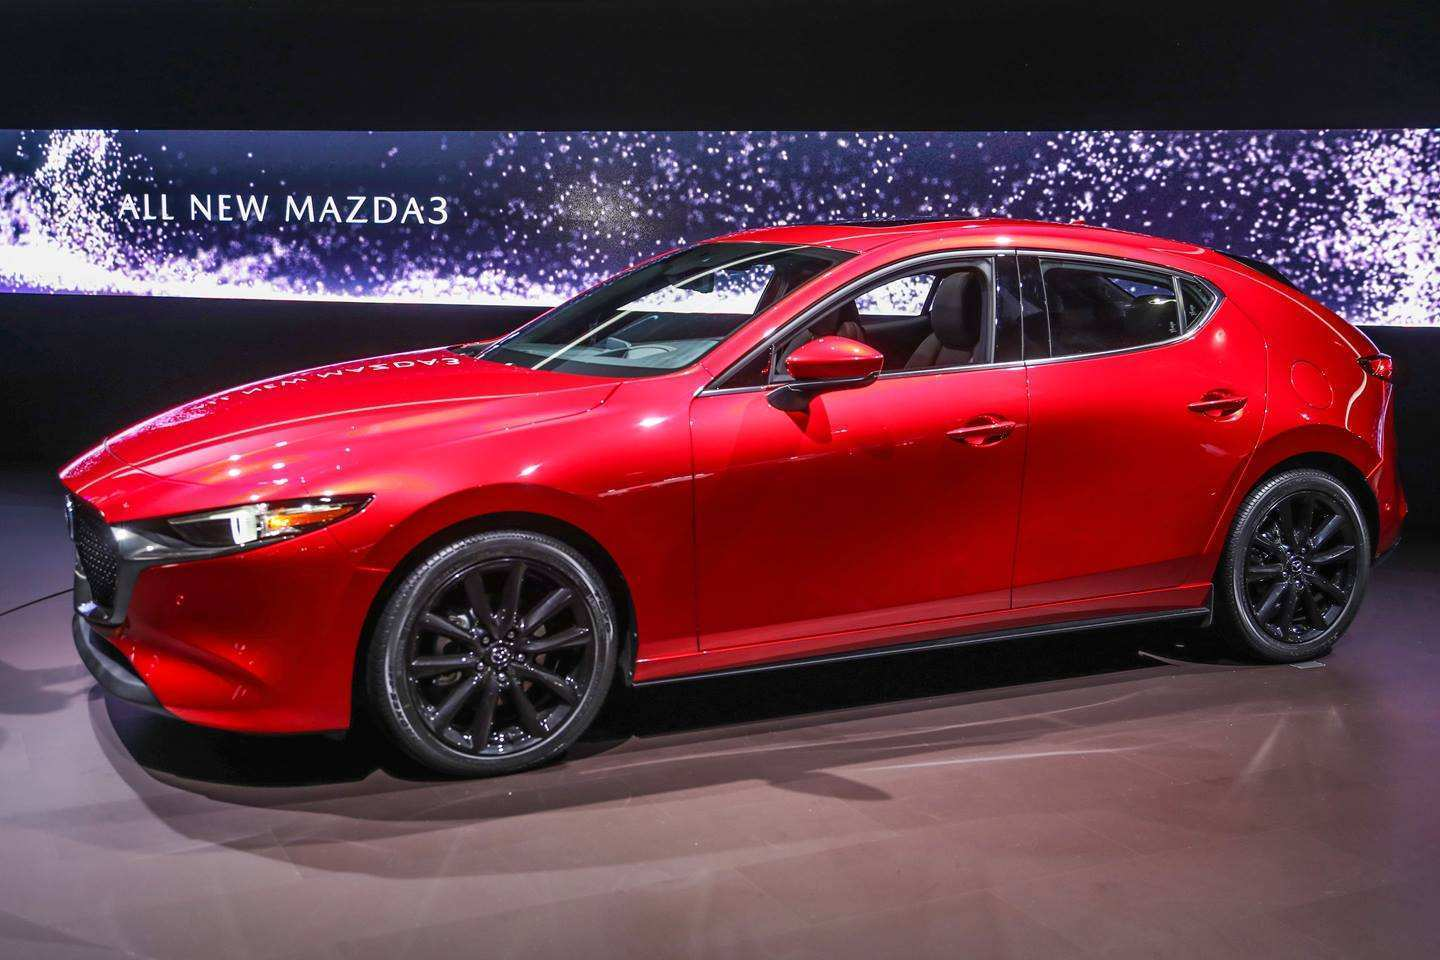 69 Best Review Best Mazda 2019 Hatch Specs Rumors with Best Mazda 2019 Hatch Specs